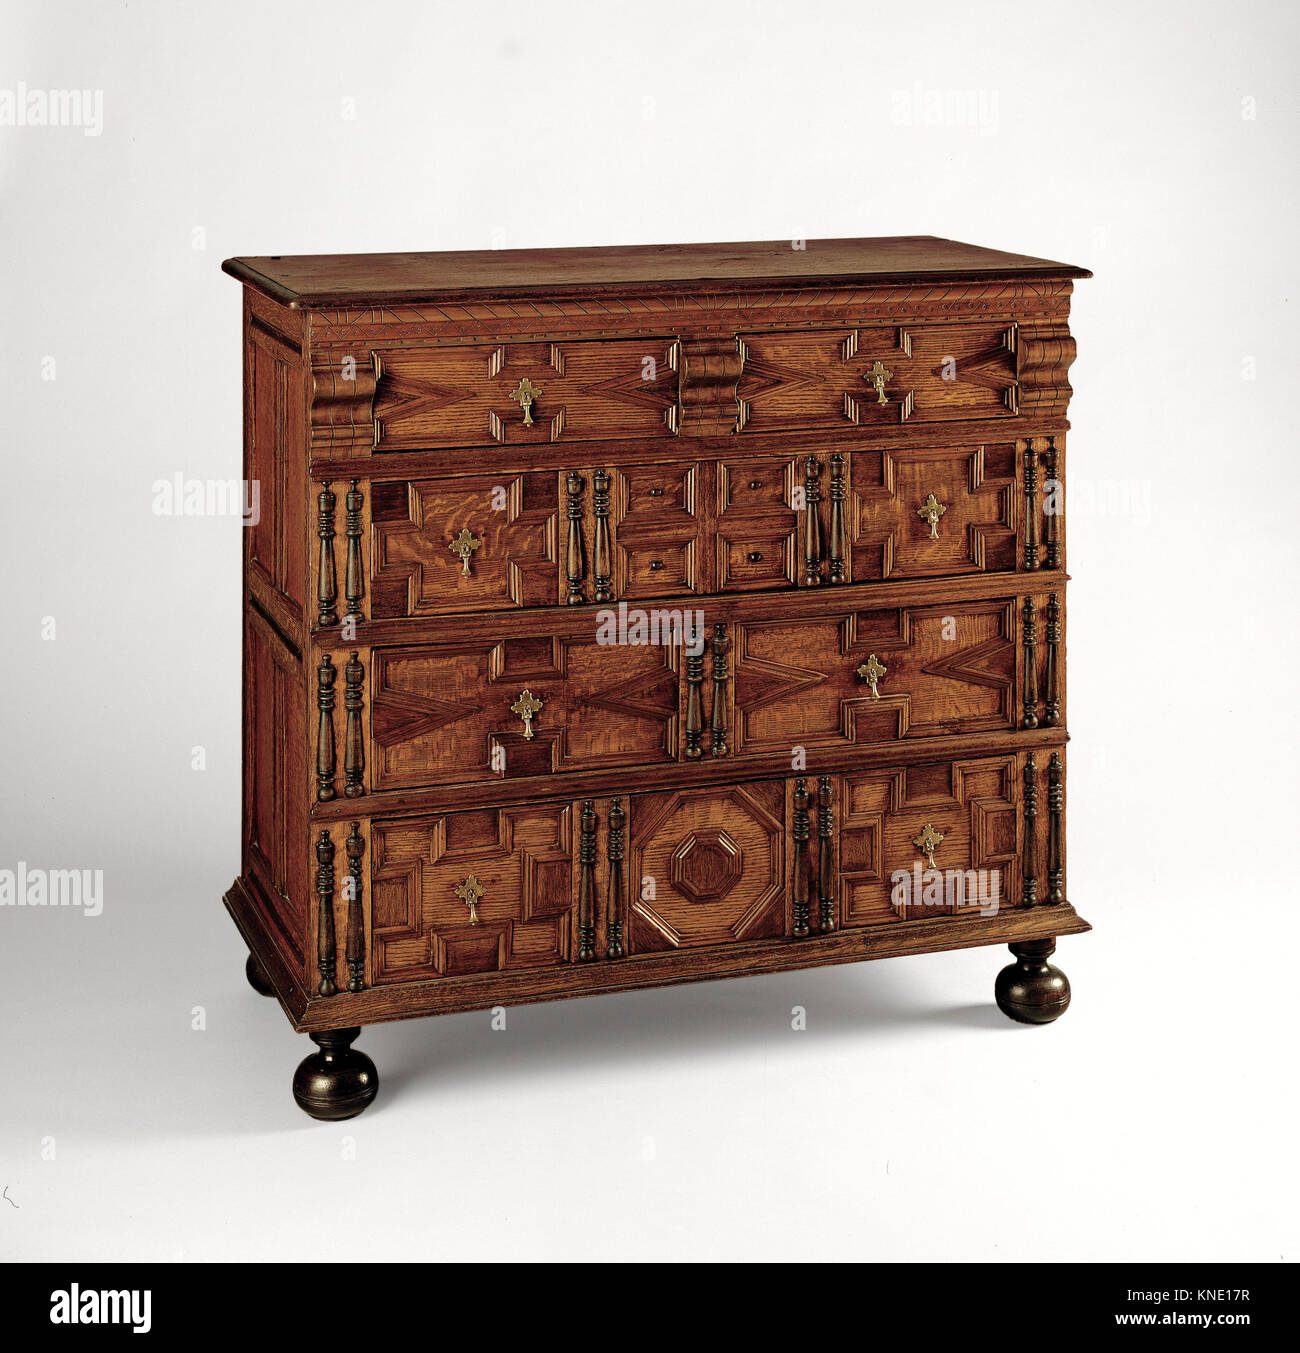 Chest of drawers MET 85J ACF3108R 2005 Maker: Attributed to The Symonds Shop, Chest of drawers, 1675?1700, Red oak, - Stock Image